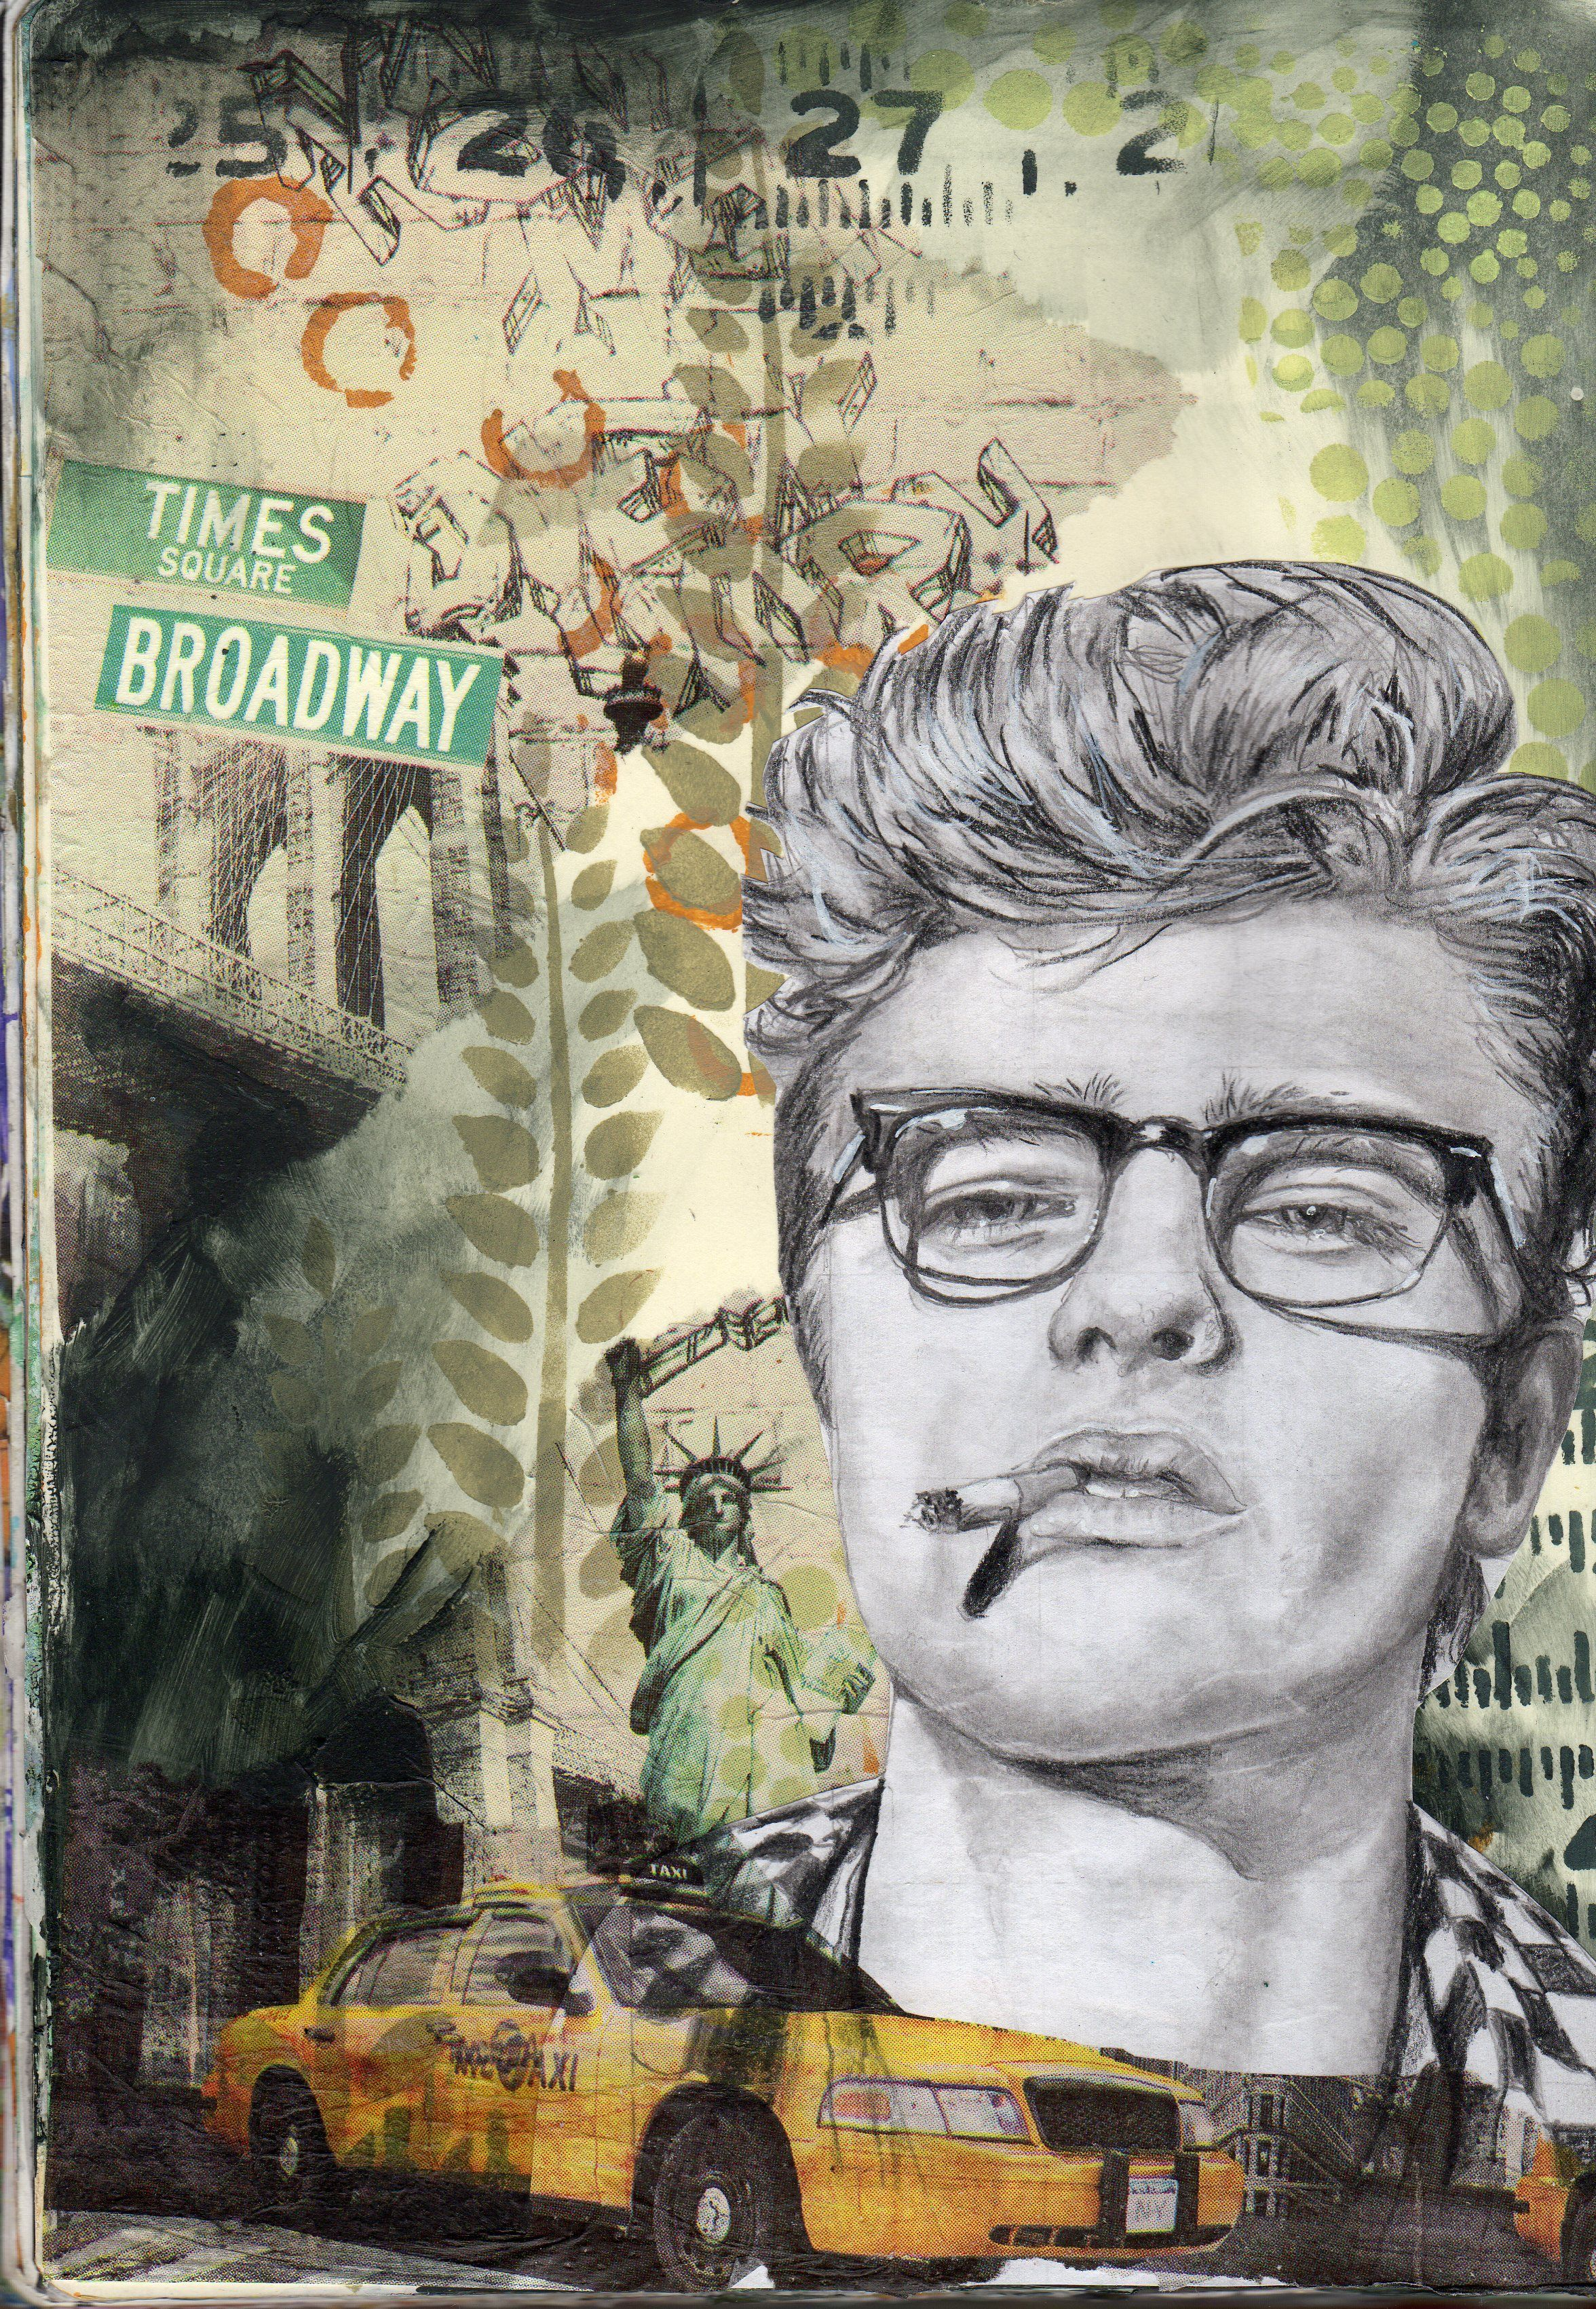 Collage and acrylic paint background pencil drawing of james dean by kathy arbour